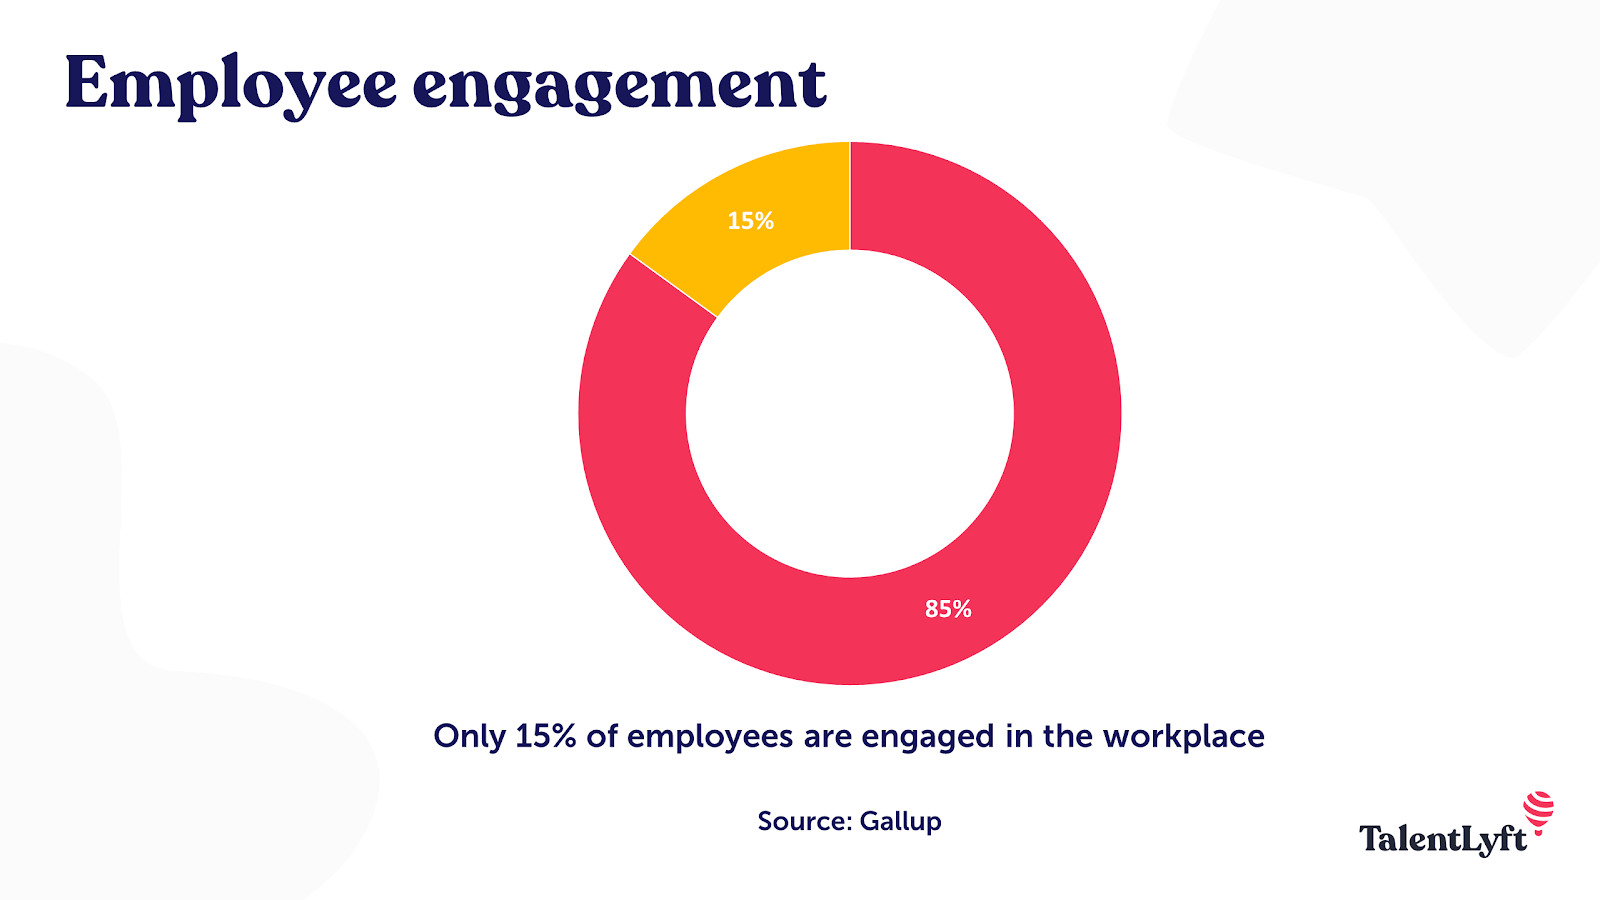 Employee Engagement: Why is it Important and How to Build it?